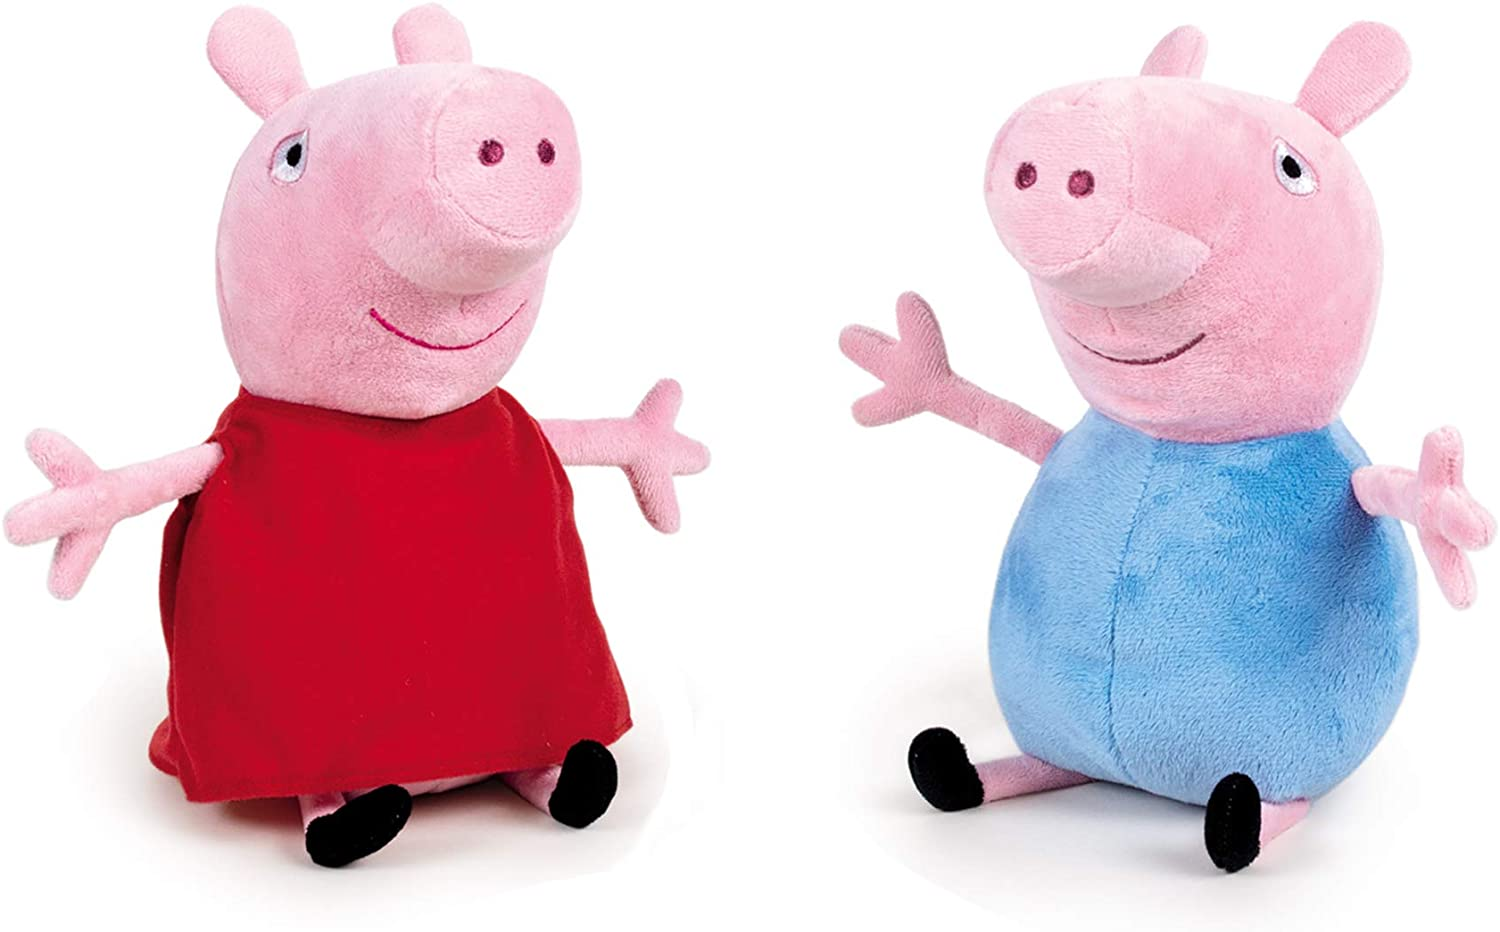 Peppa Pig - Pack de 2 Peluches Peppa Pig y George 20 centímetros - Calidad Super Soft